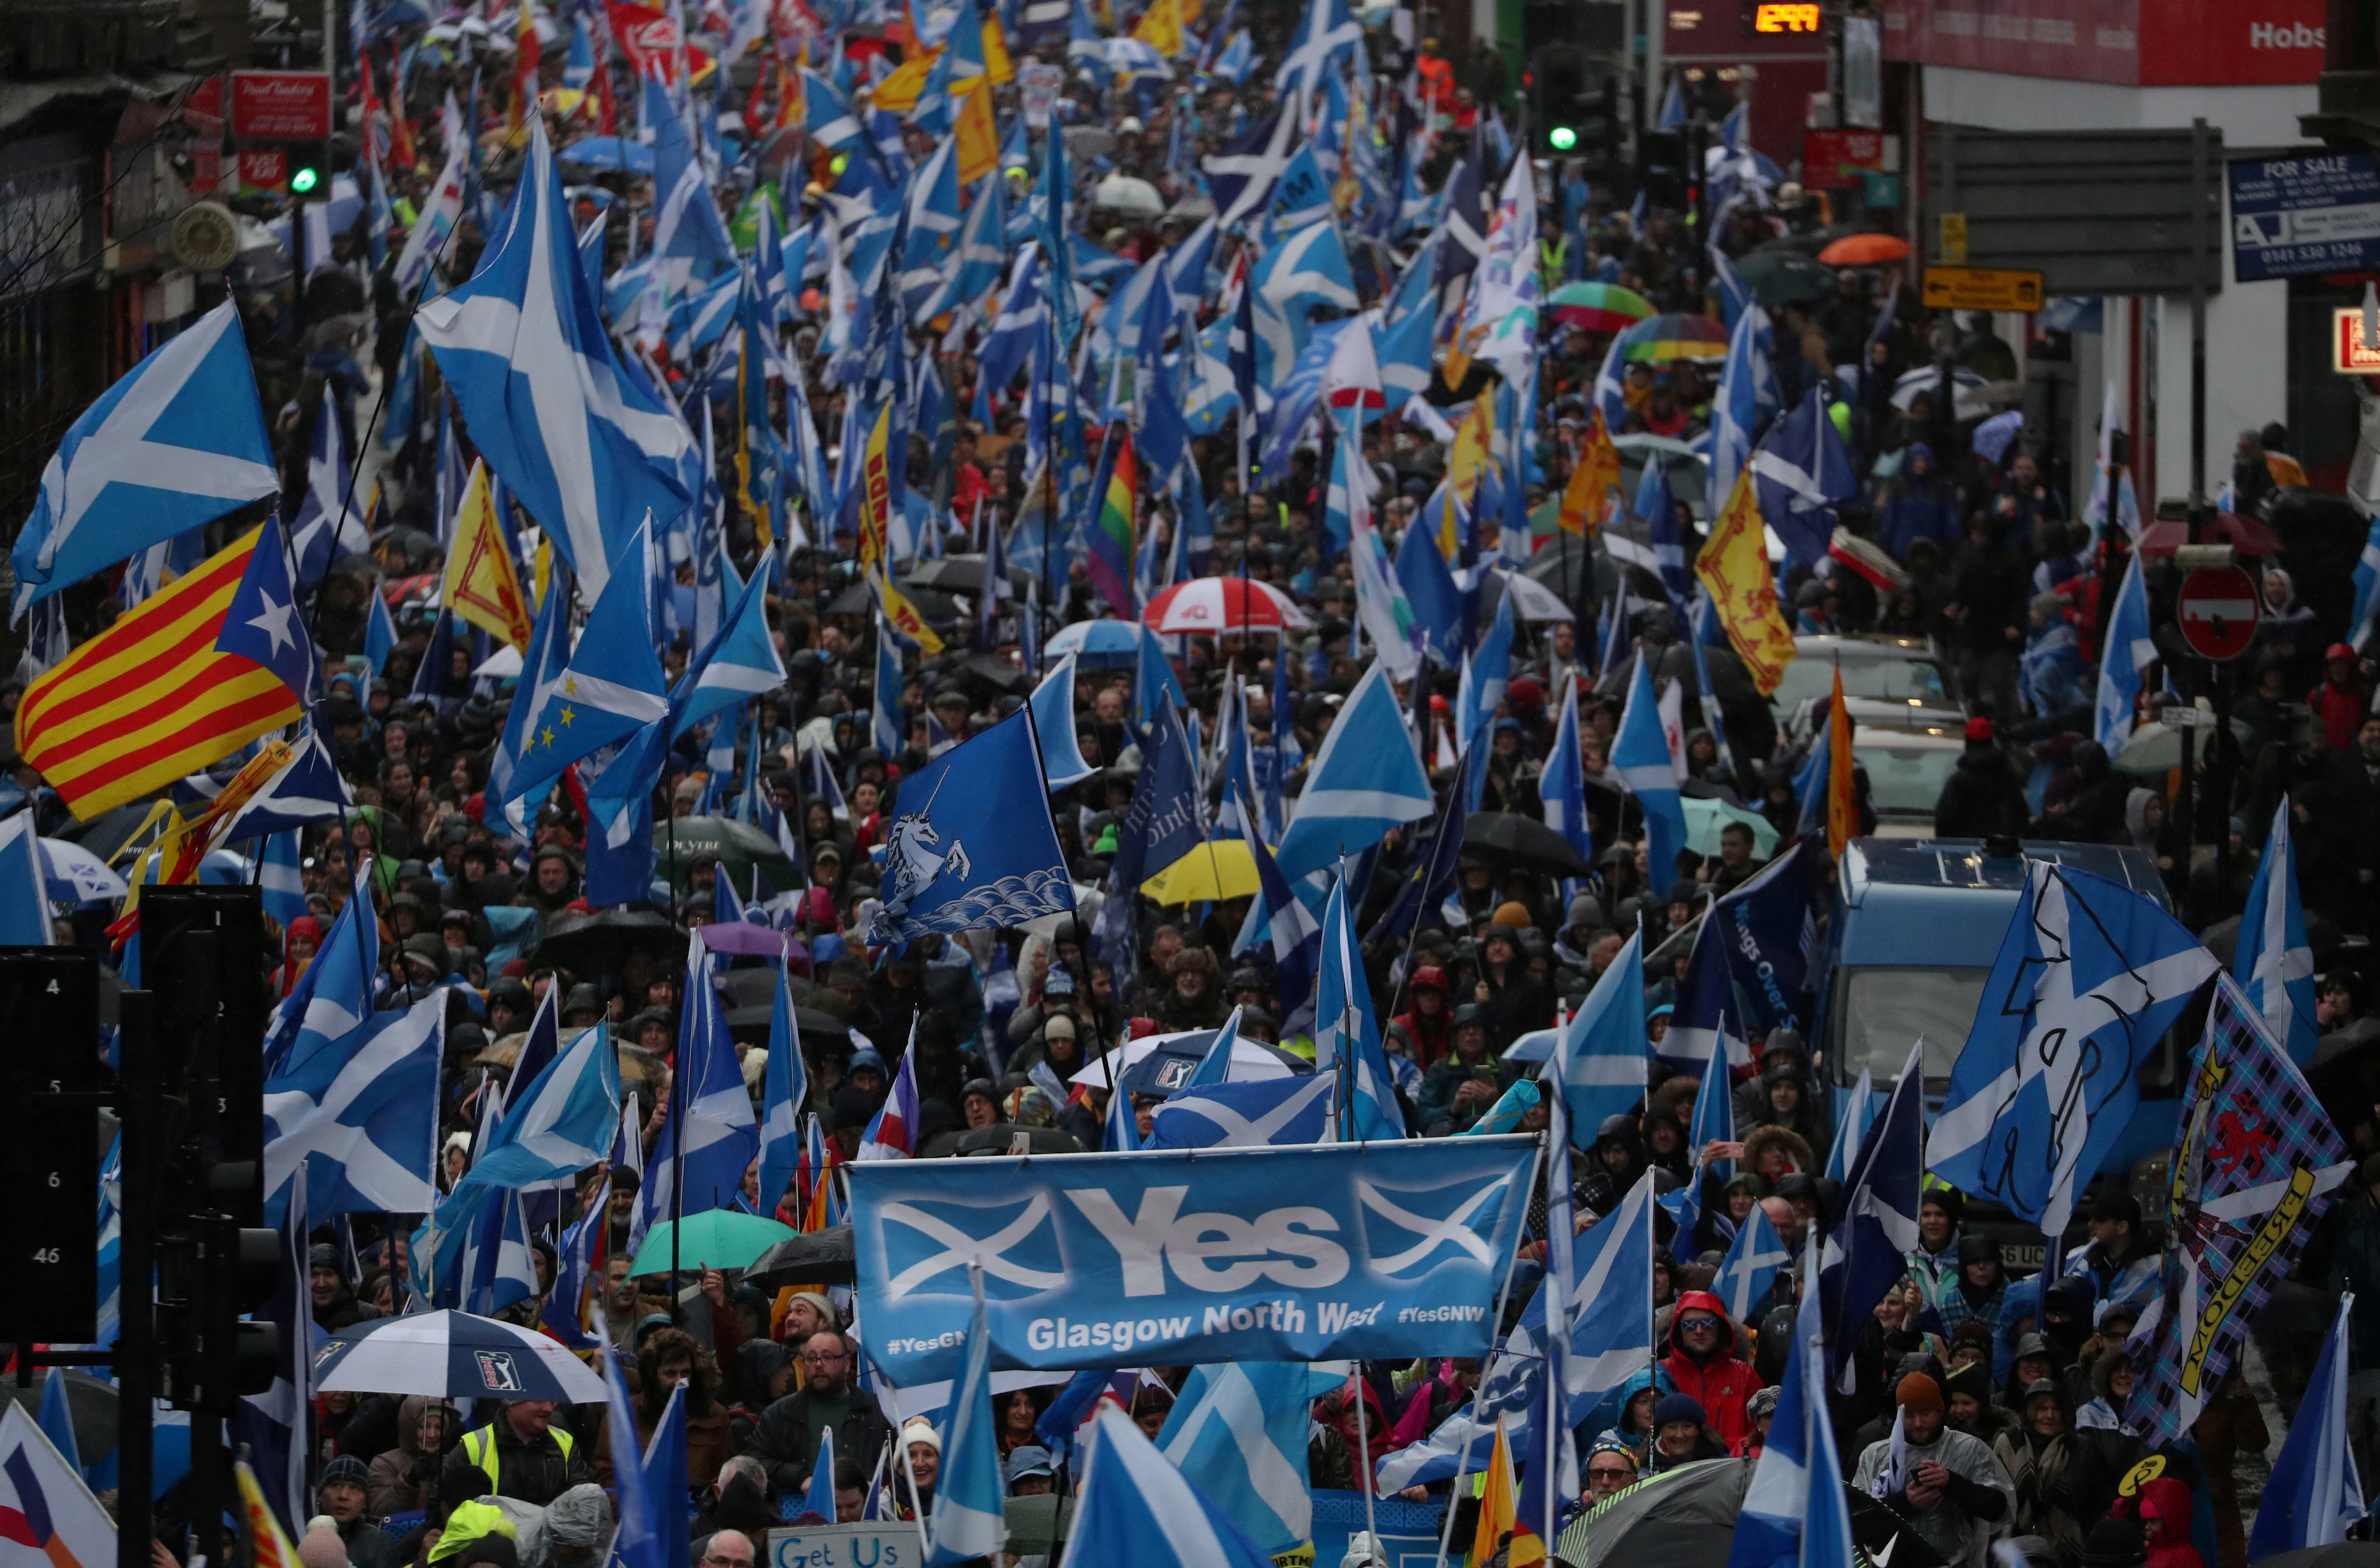 Demonstrators march for Scottish Independence through Glasgow City centre, Scotland, Britain January 11, 2020. REUTERS/Russell Cheyne/File Photo